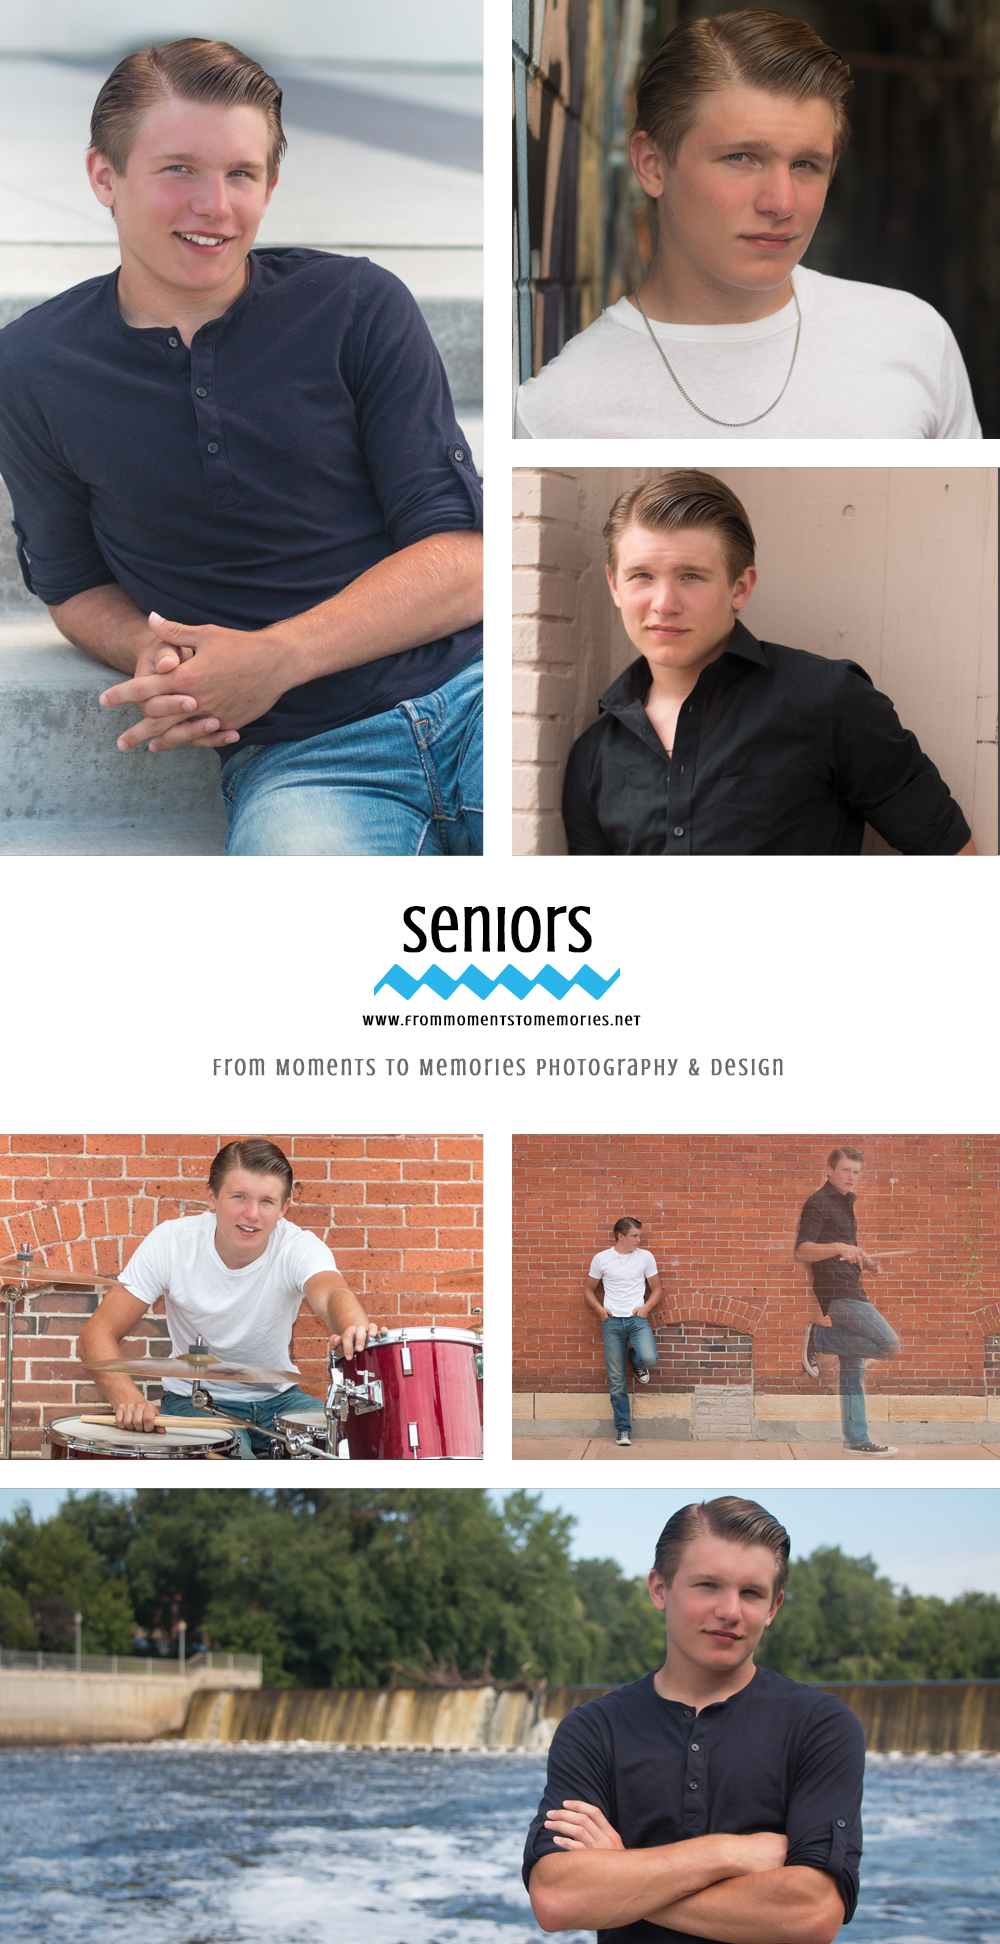 elk_river_senior_photographer_from_moments_to_memories_buffalo_seniors